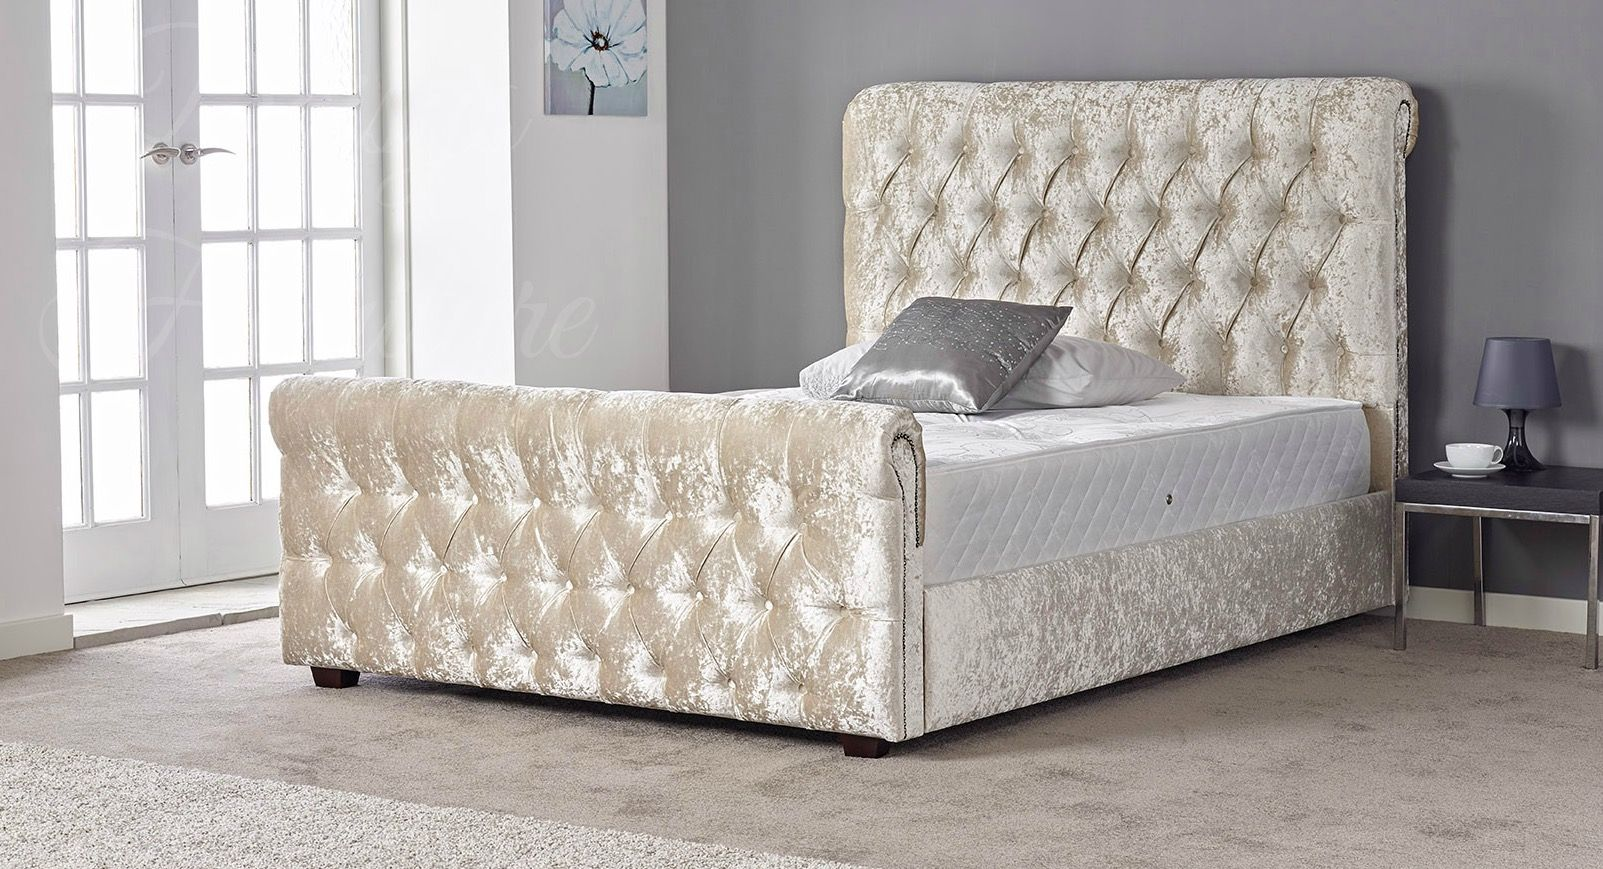 Our beautiful Lacey bed is a stunning crushed velvet sleigh bed ...